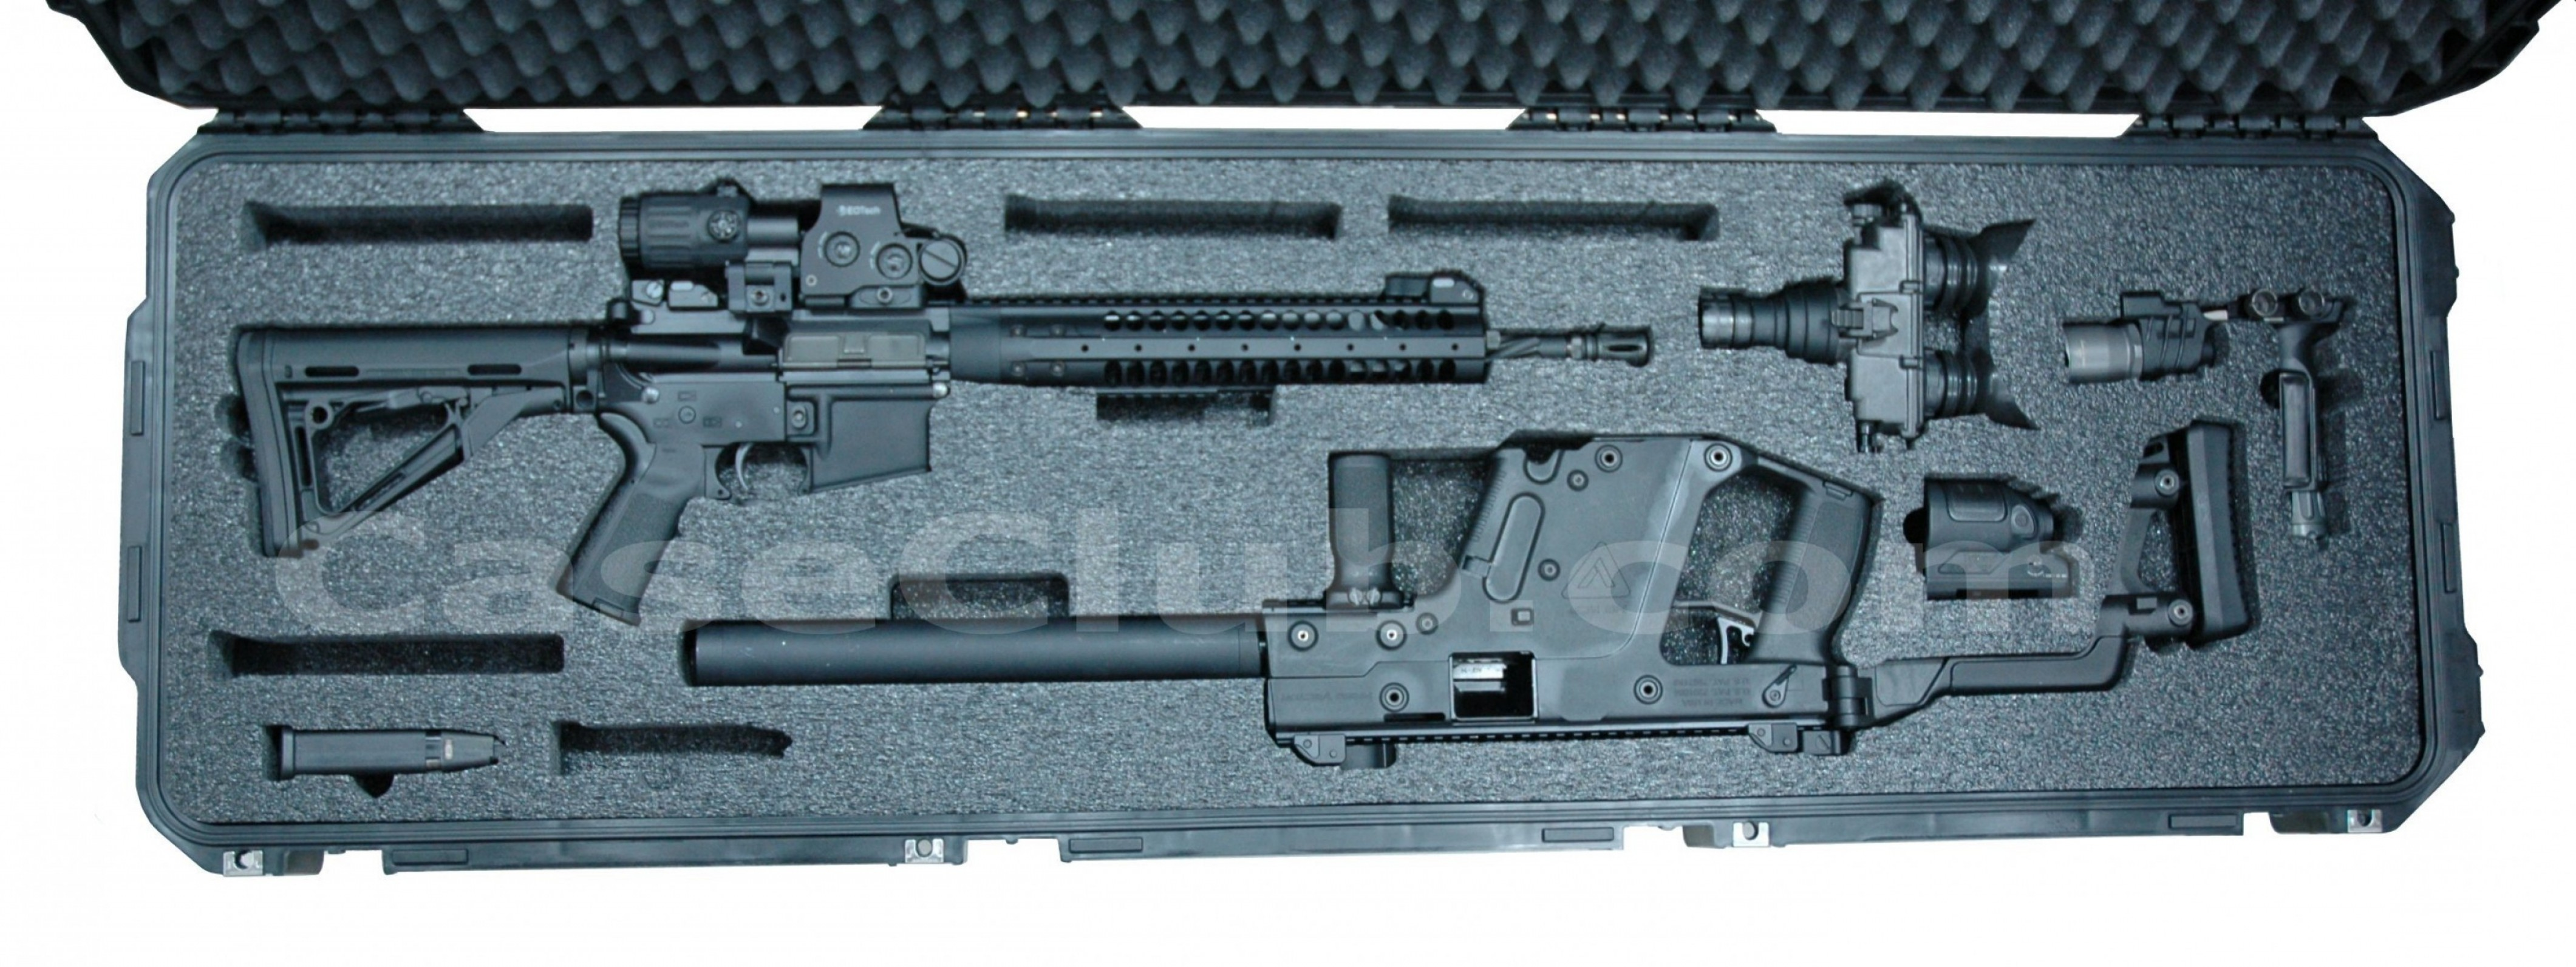 Kriss Vector Specs: Kriss Vector Ar Dual Rifle Case